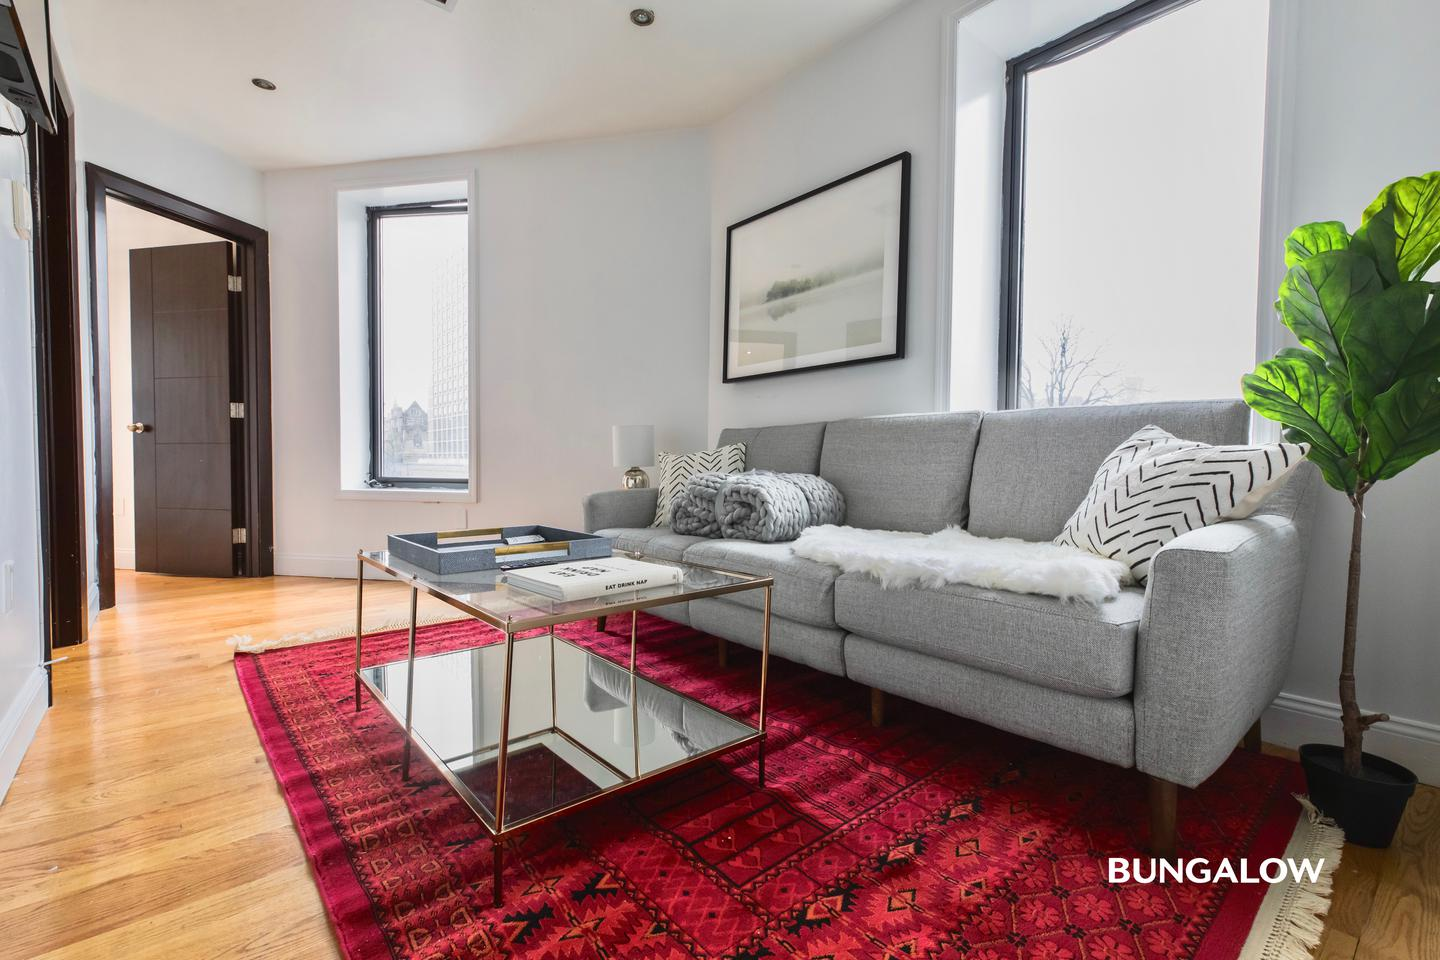 Apartments Near Lehman College Private Bedroom in Sleek Upper West Side Apartment With Gorgeous City Views for CUNY Lehman College Students in Bronx, NY